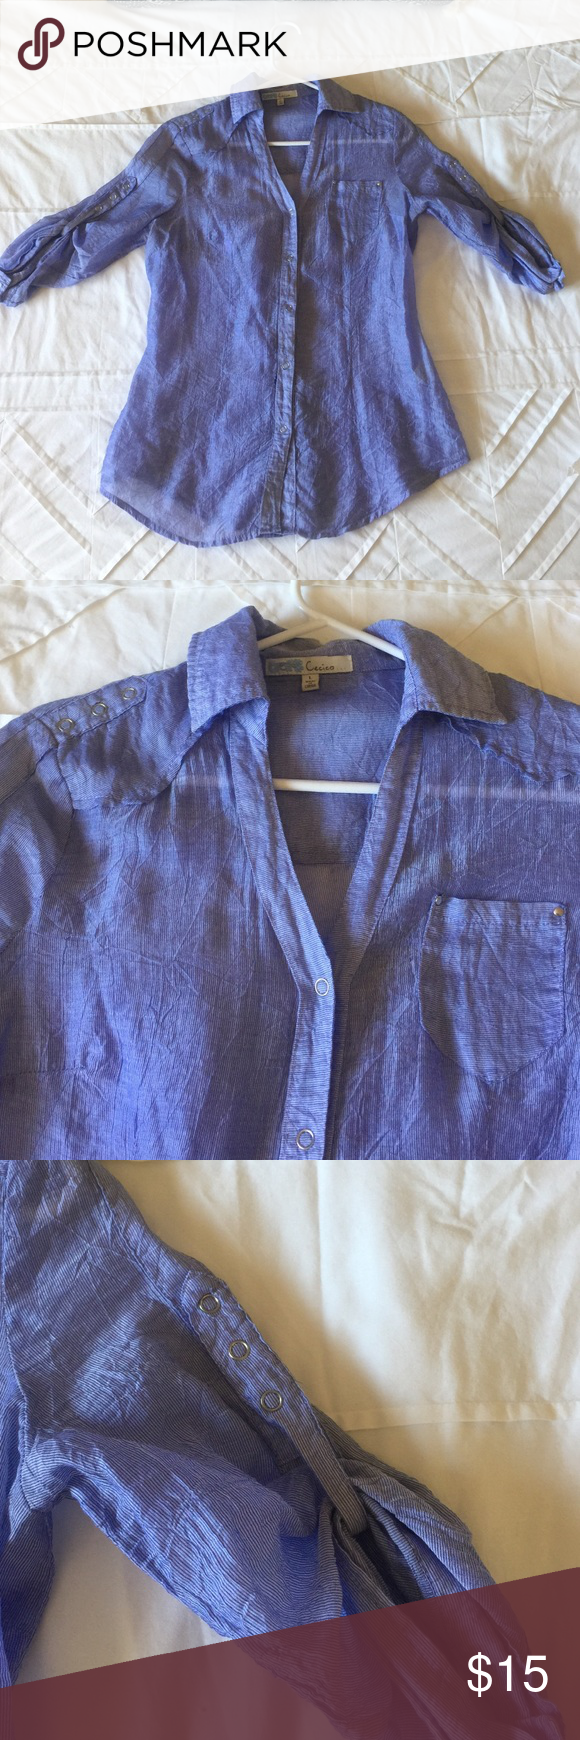 Three quarter length button up blouse Purple three quarter length snap button blouse.  Had three little button on back for a more fitted look.  One of the buttons is missing. Also has small hole in front near buttons. Tops Blouses